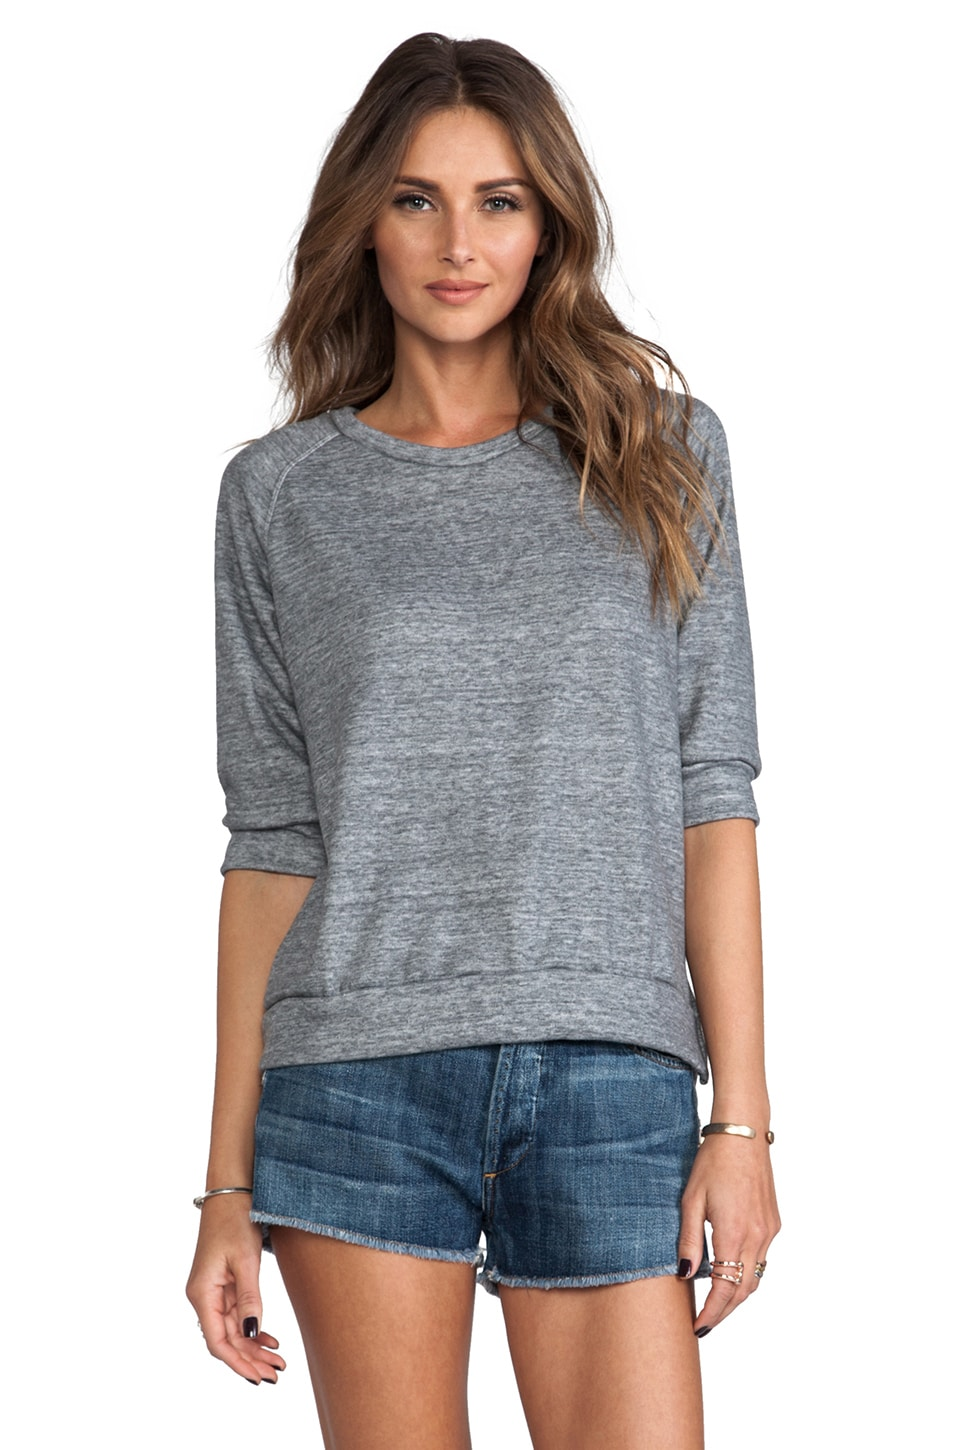 LNA 3/4 Terry Sweatshirt in Heather Grey